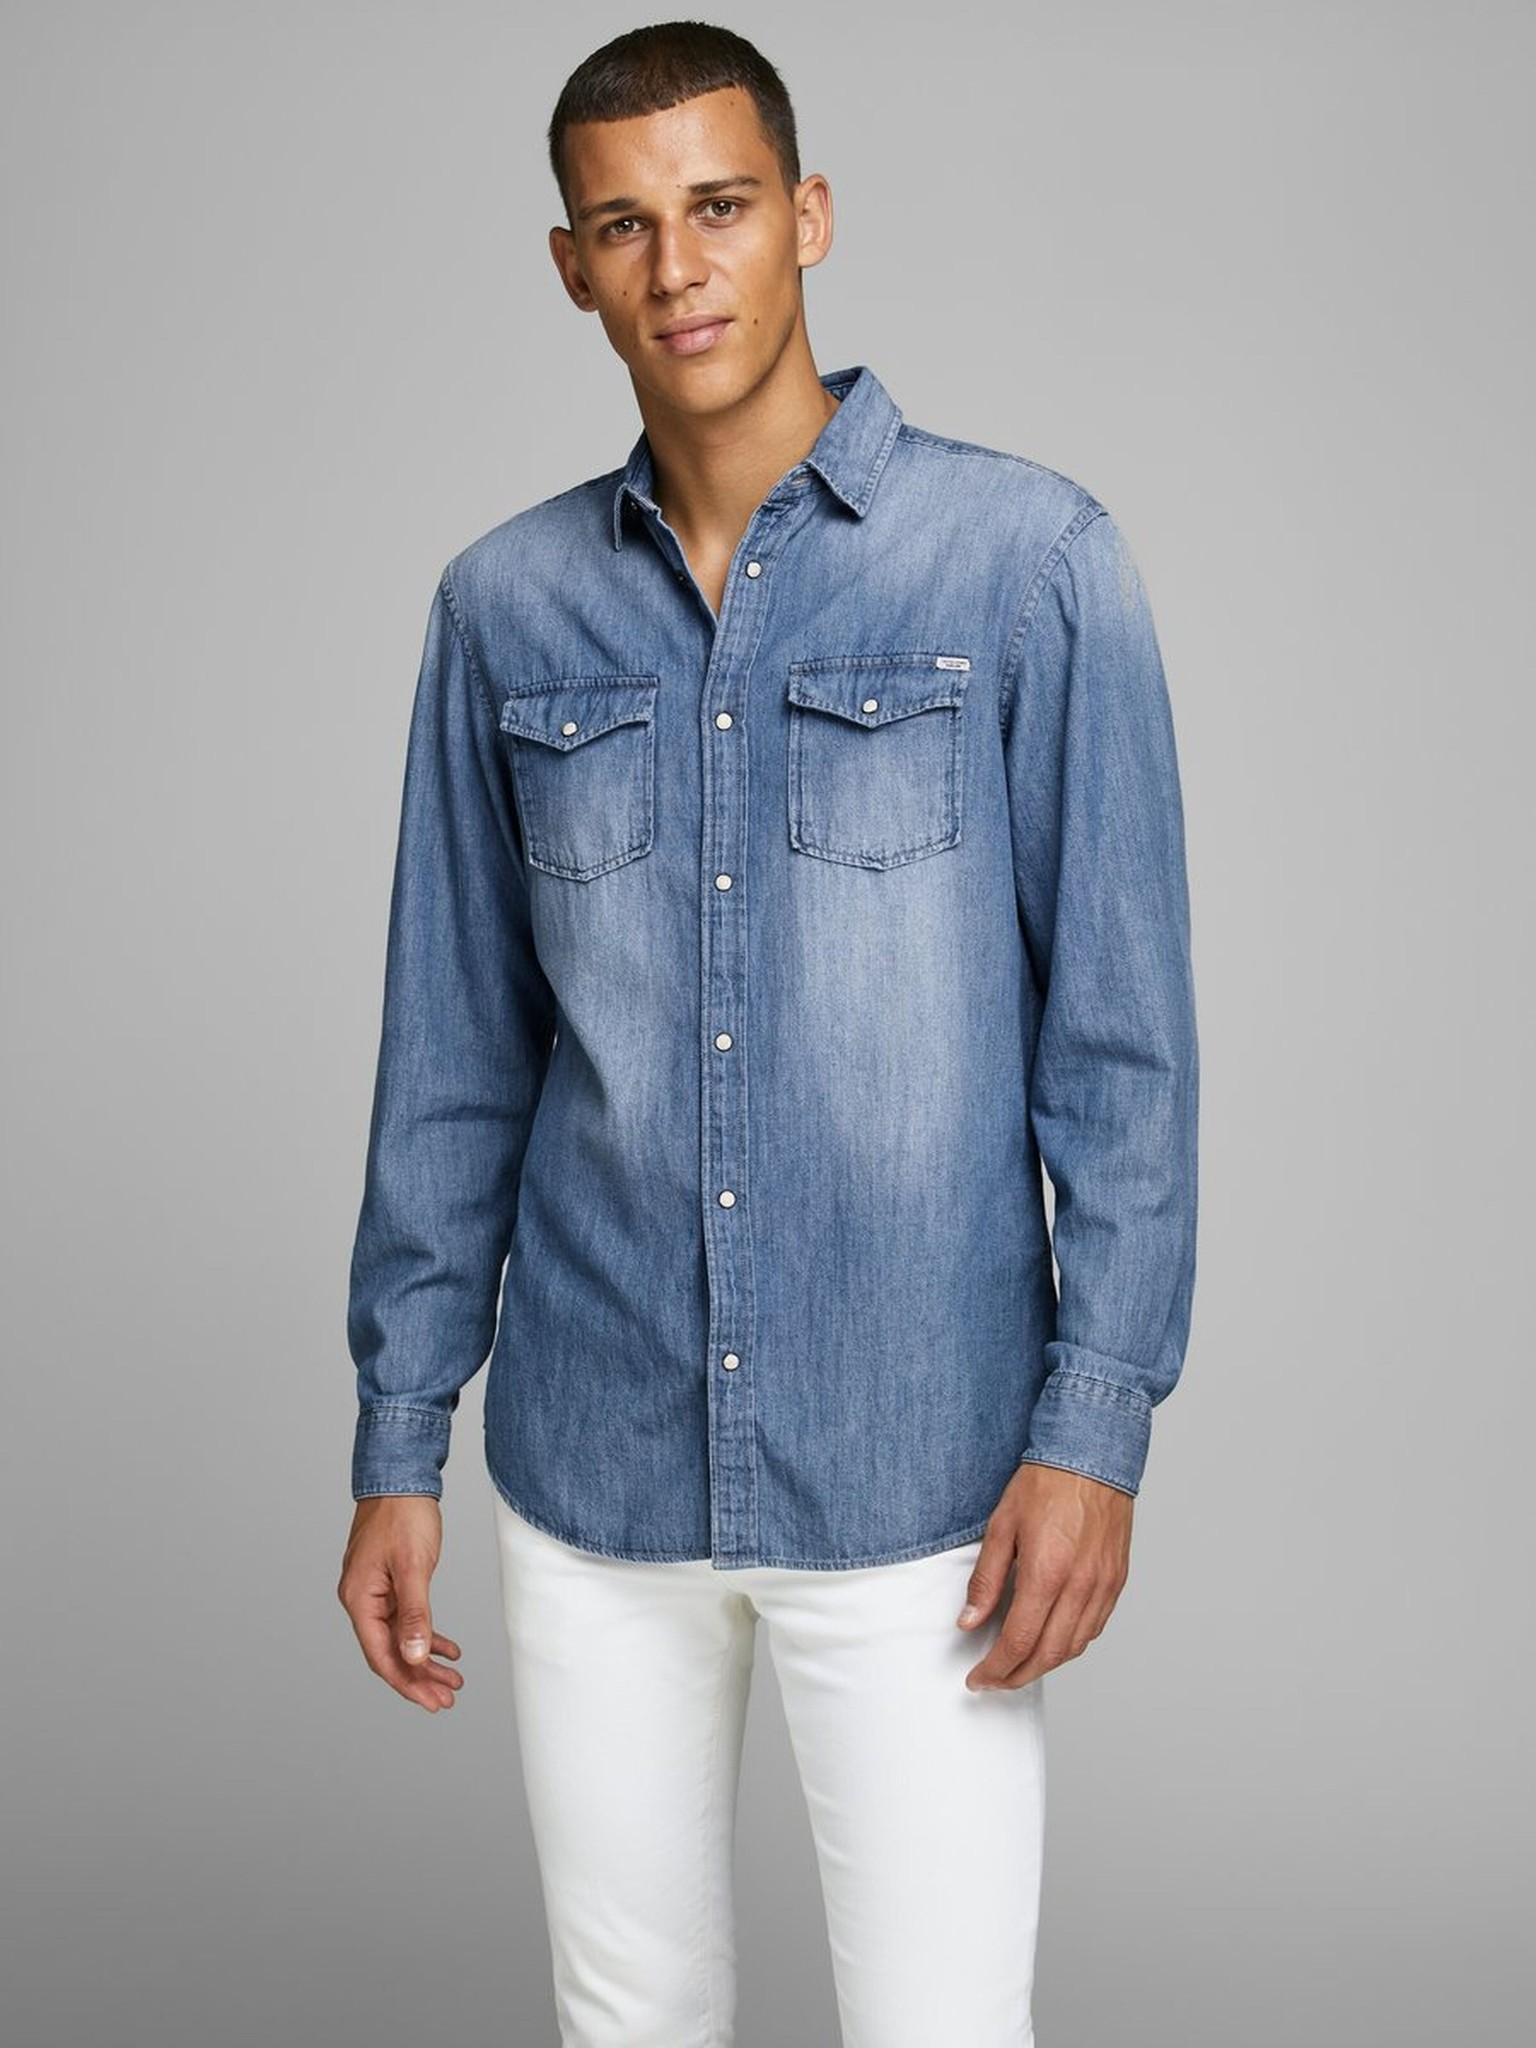 JACK & JONES indispensable chemise-7